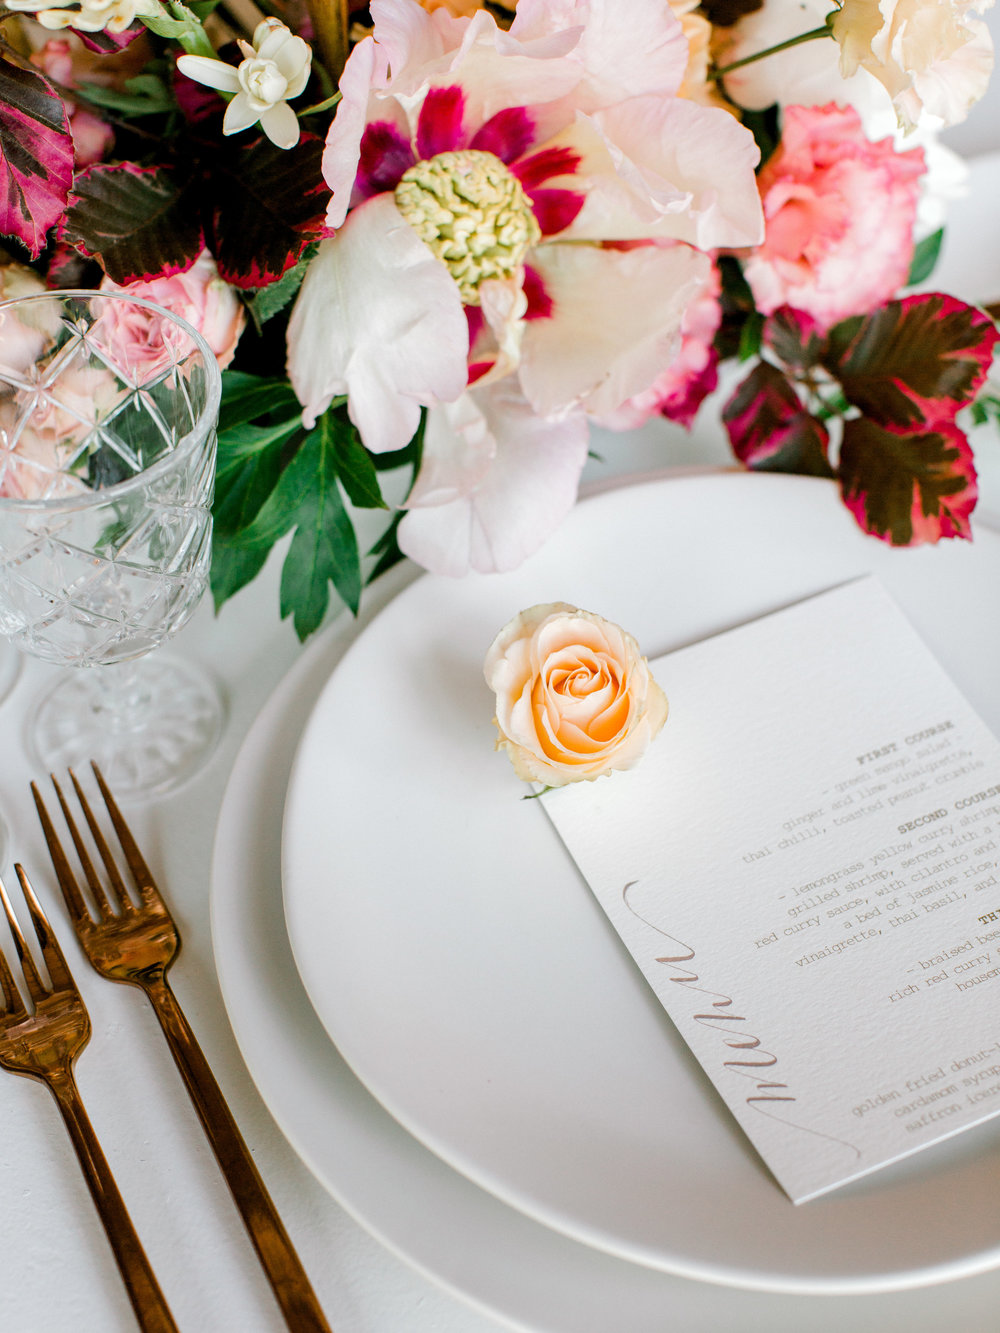 coordinators & stylists:  June Bloom Events  | flowers:  Quill and Oak  | furniture rentals:  Glamourous Affairs  | table setting:  Plate Occasions  | paper goods & calligraphy:  Kimi Arya Events  | photographer:  Jess Imirie Photography  | venue:  Langdon Hall